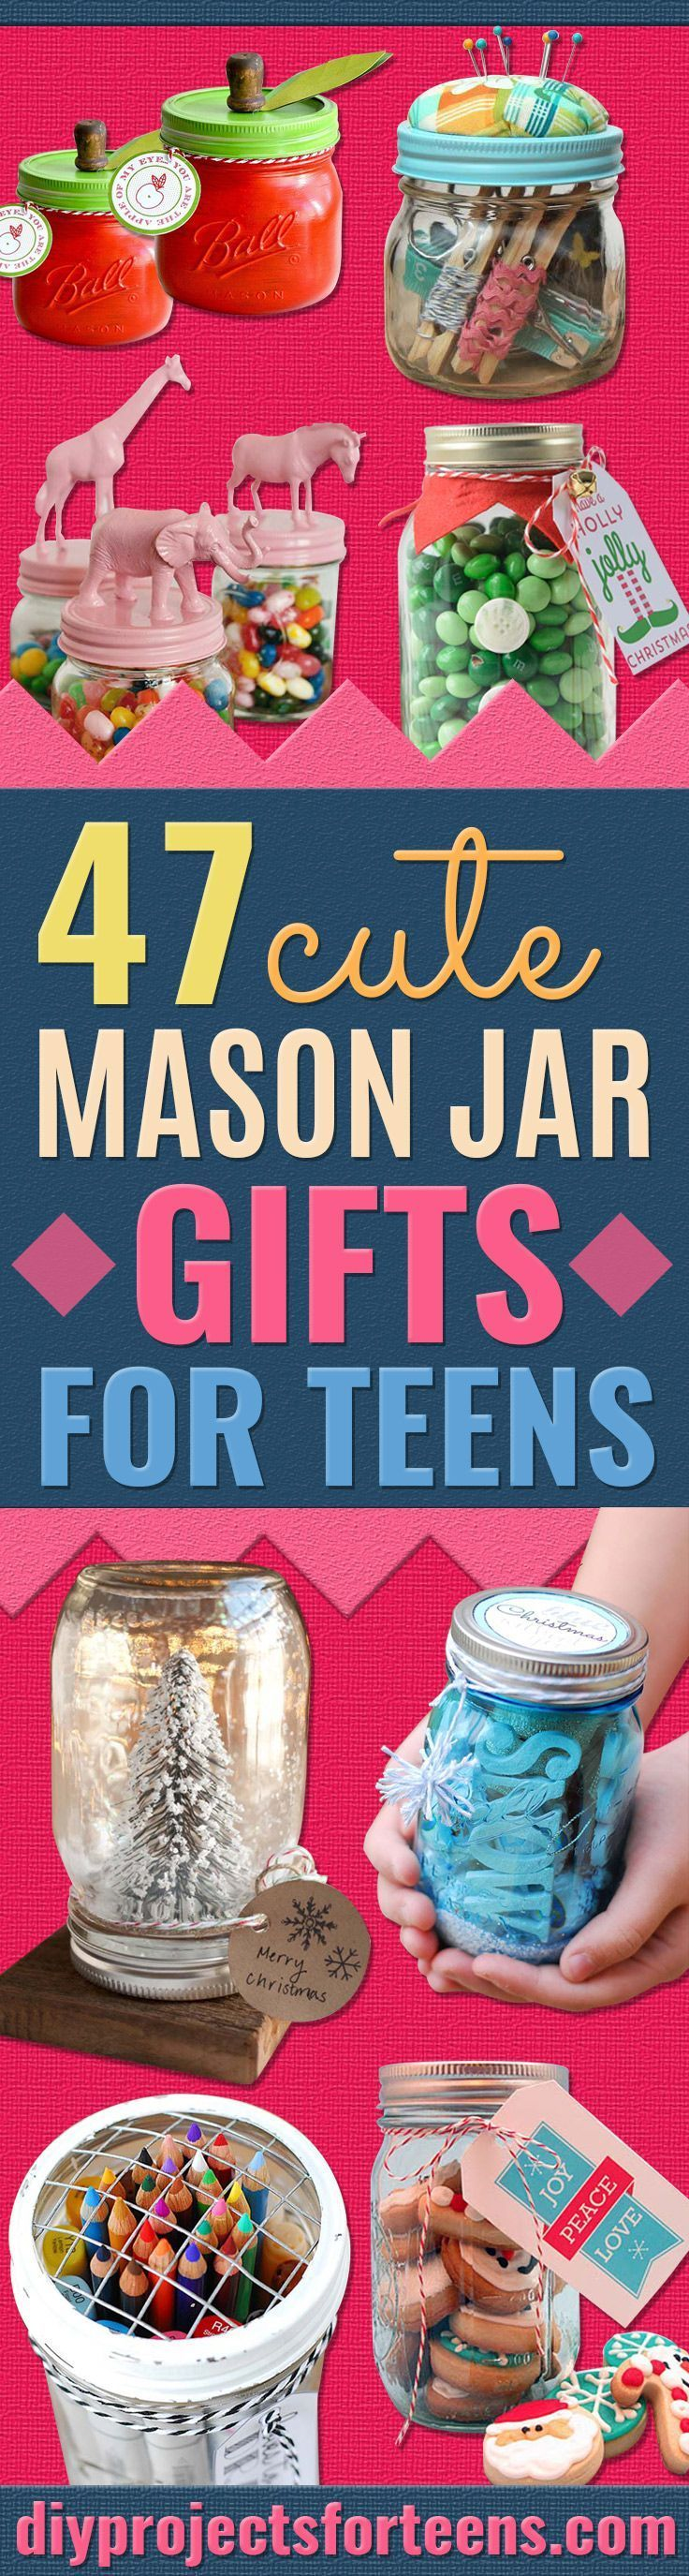 Best 25 Presents for teenage girls ideas on Pinterest